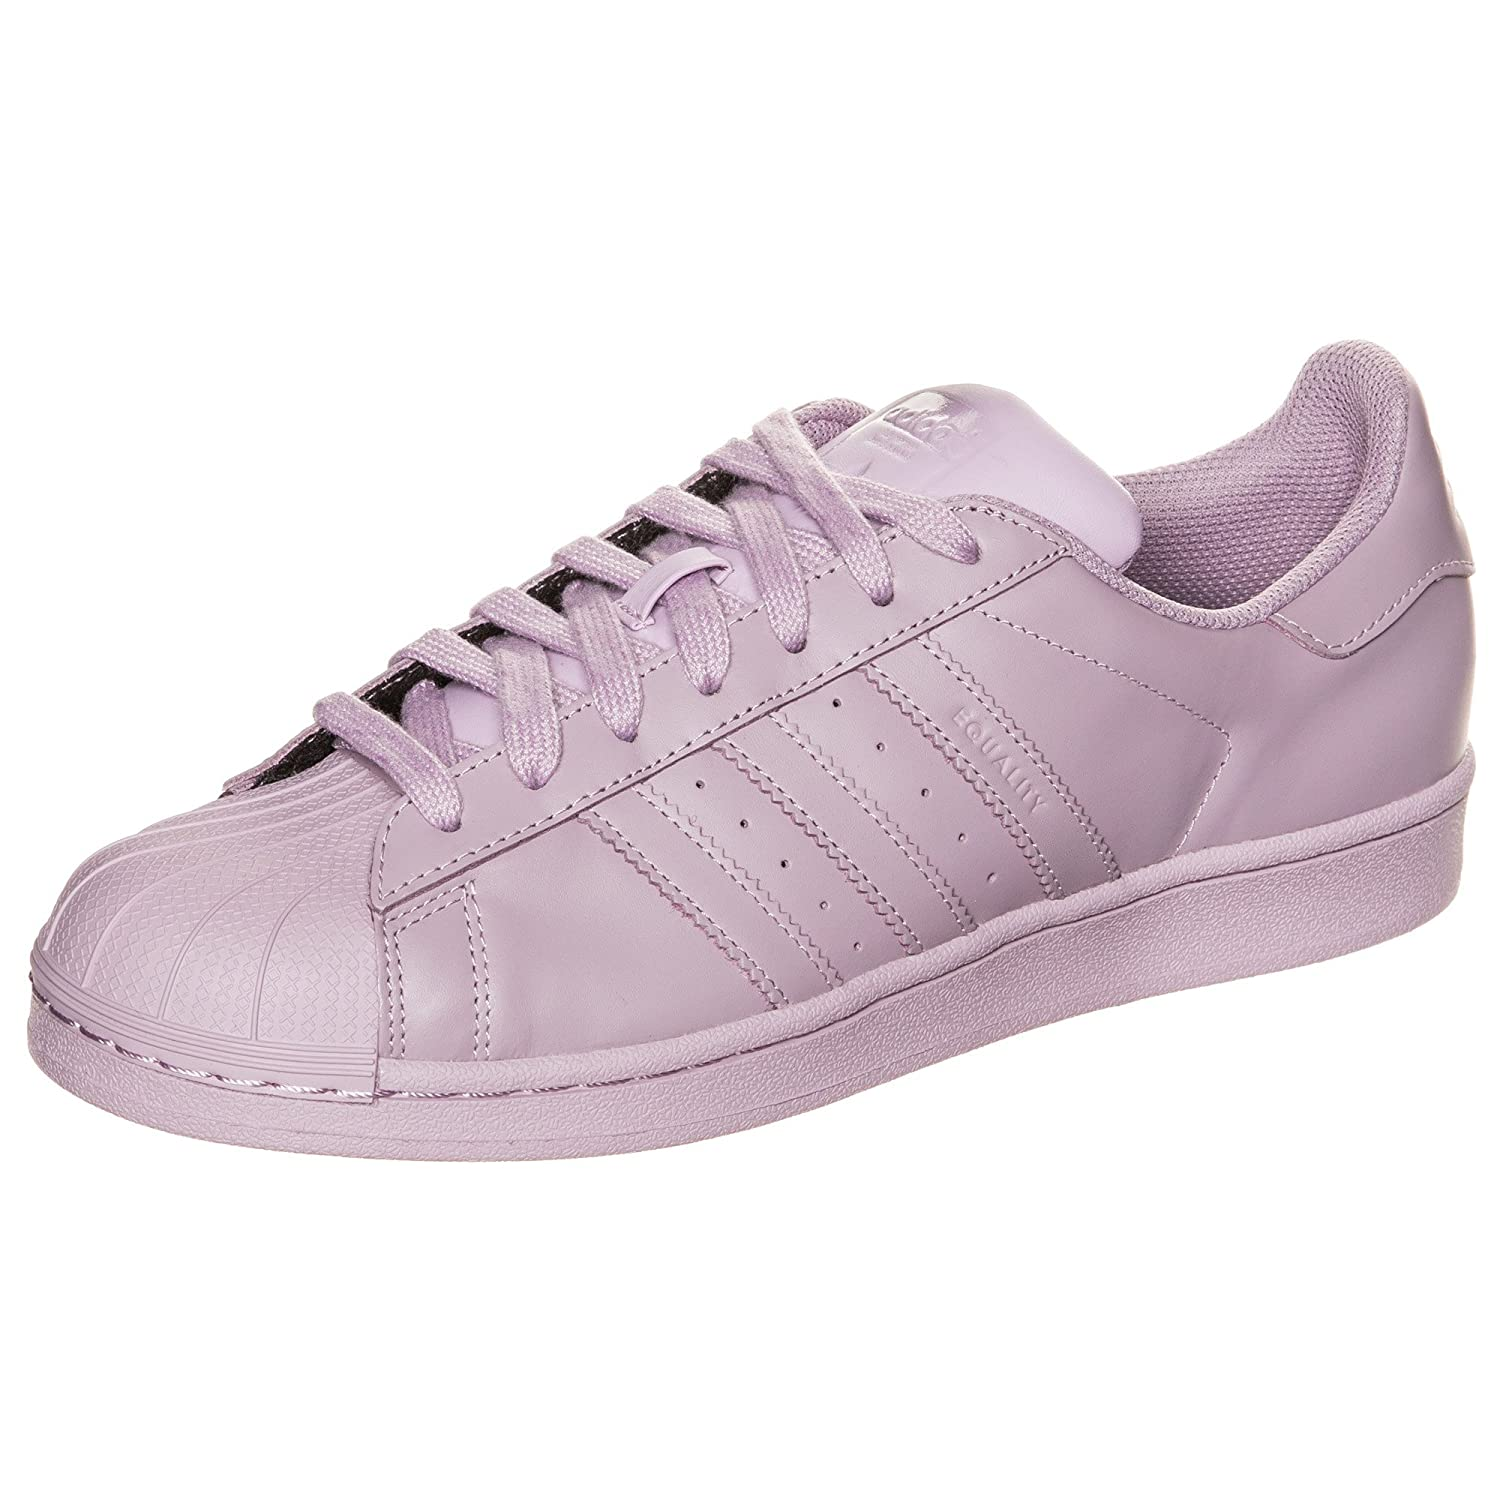 photos officielles 4aa16 69970 Adidas Superstar Pharrell Williams Men's Sneakers lilac Size ...